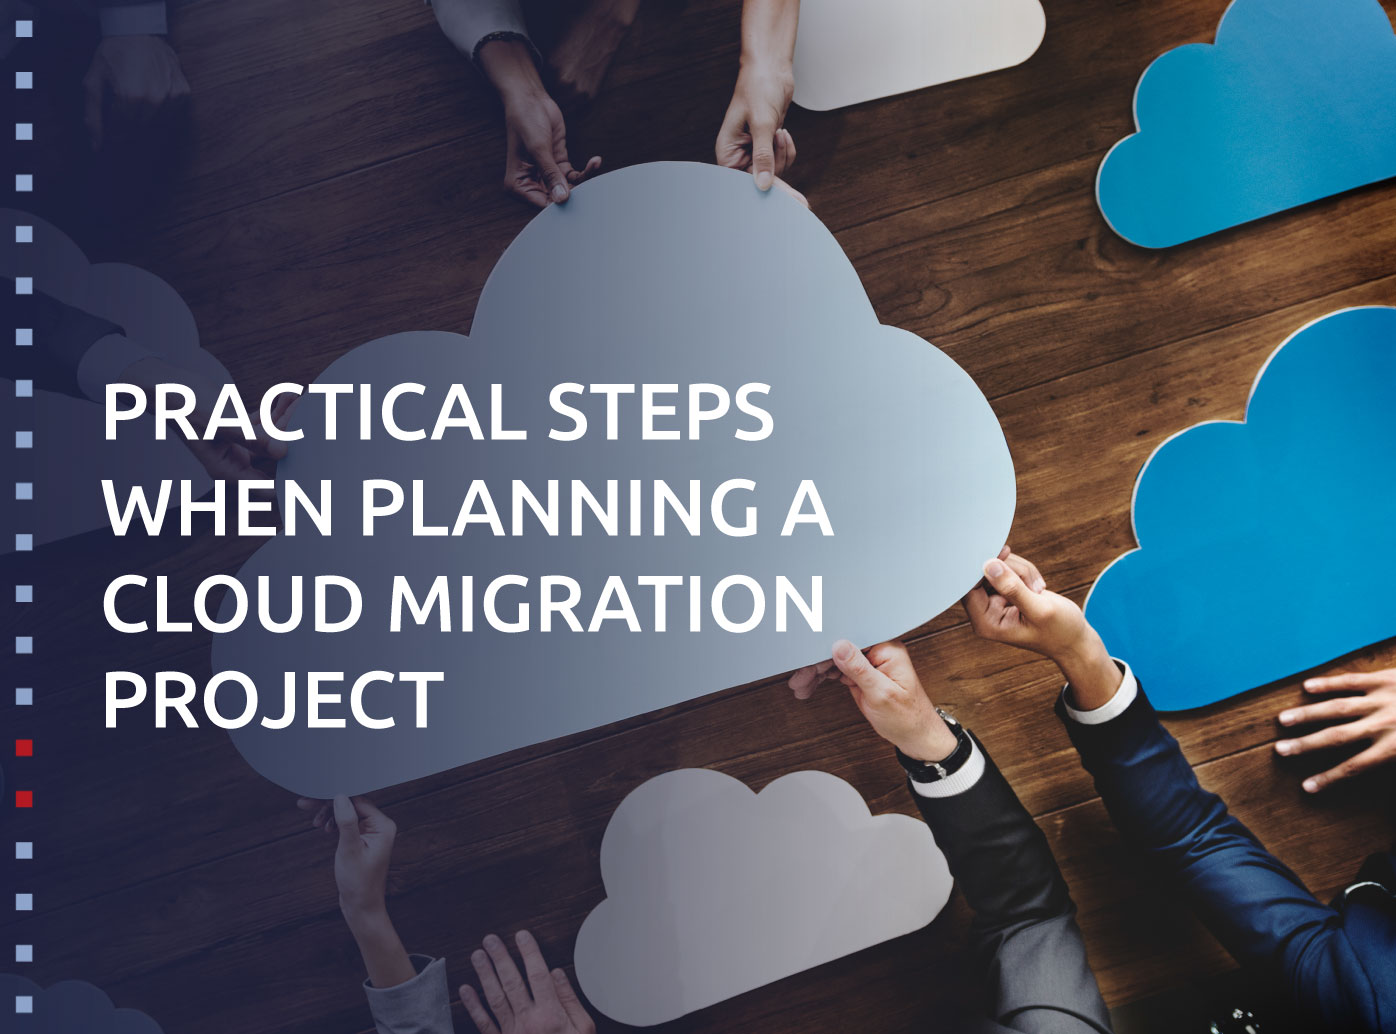 Practical steps when planning a cloud migration project